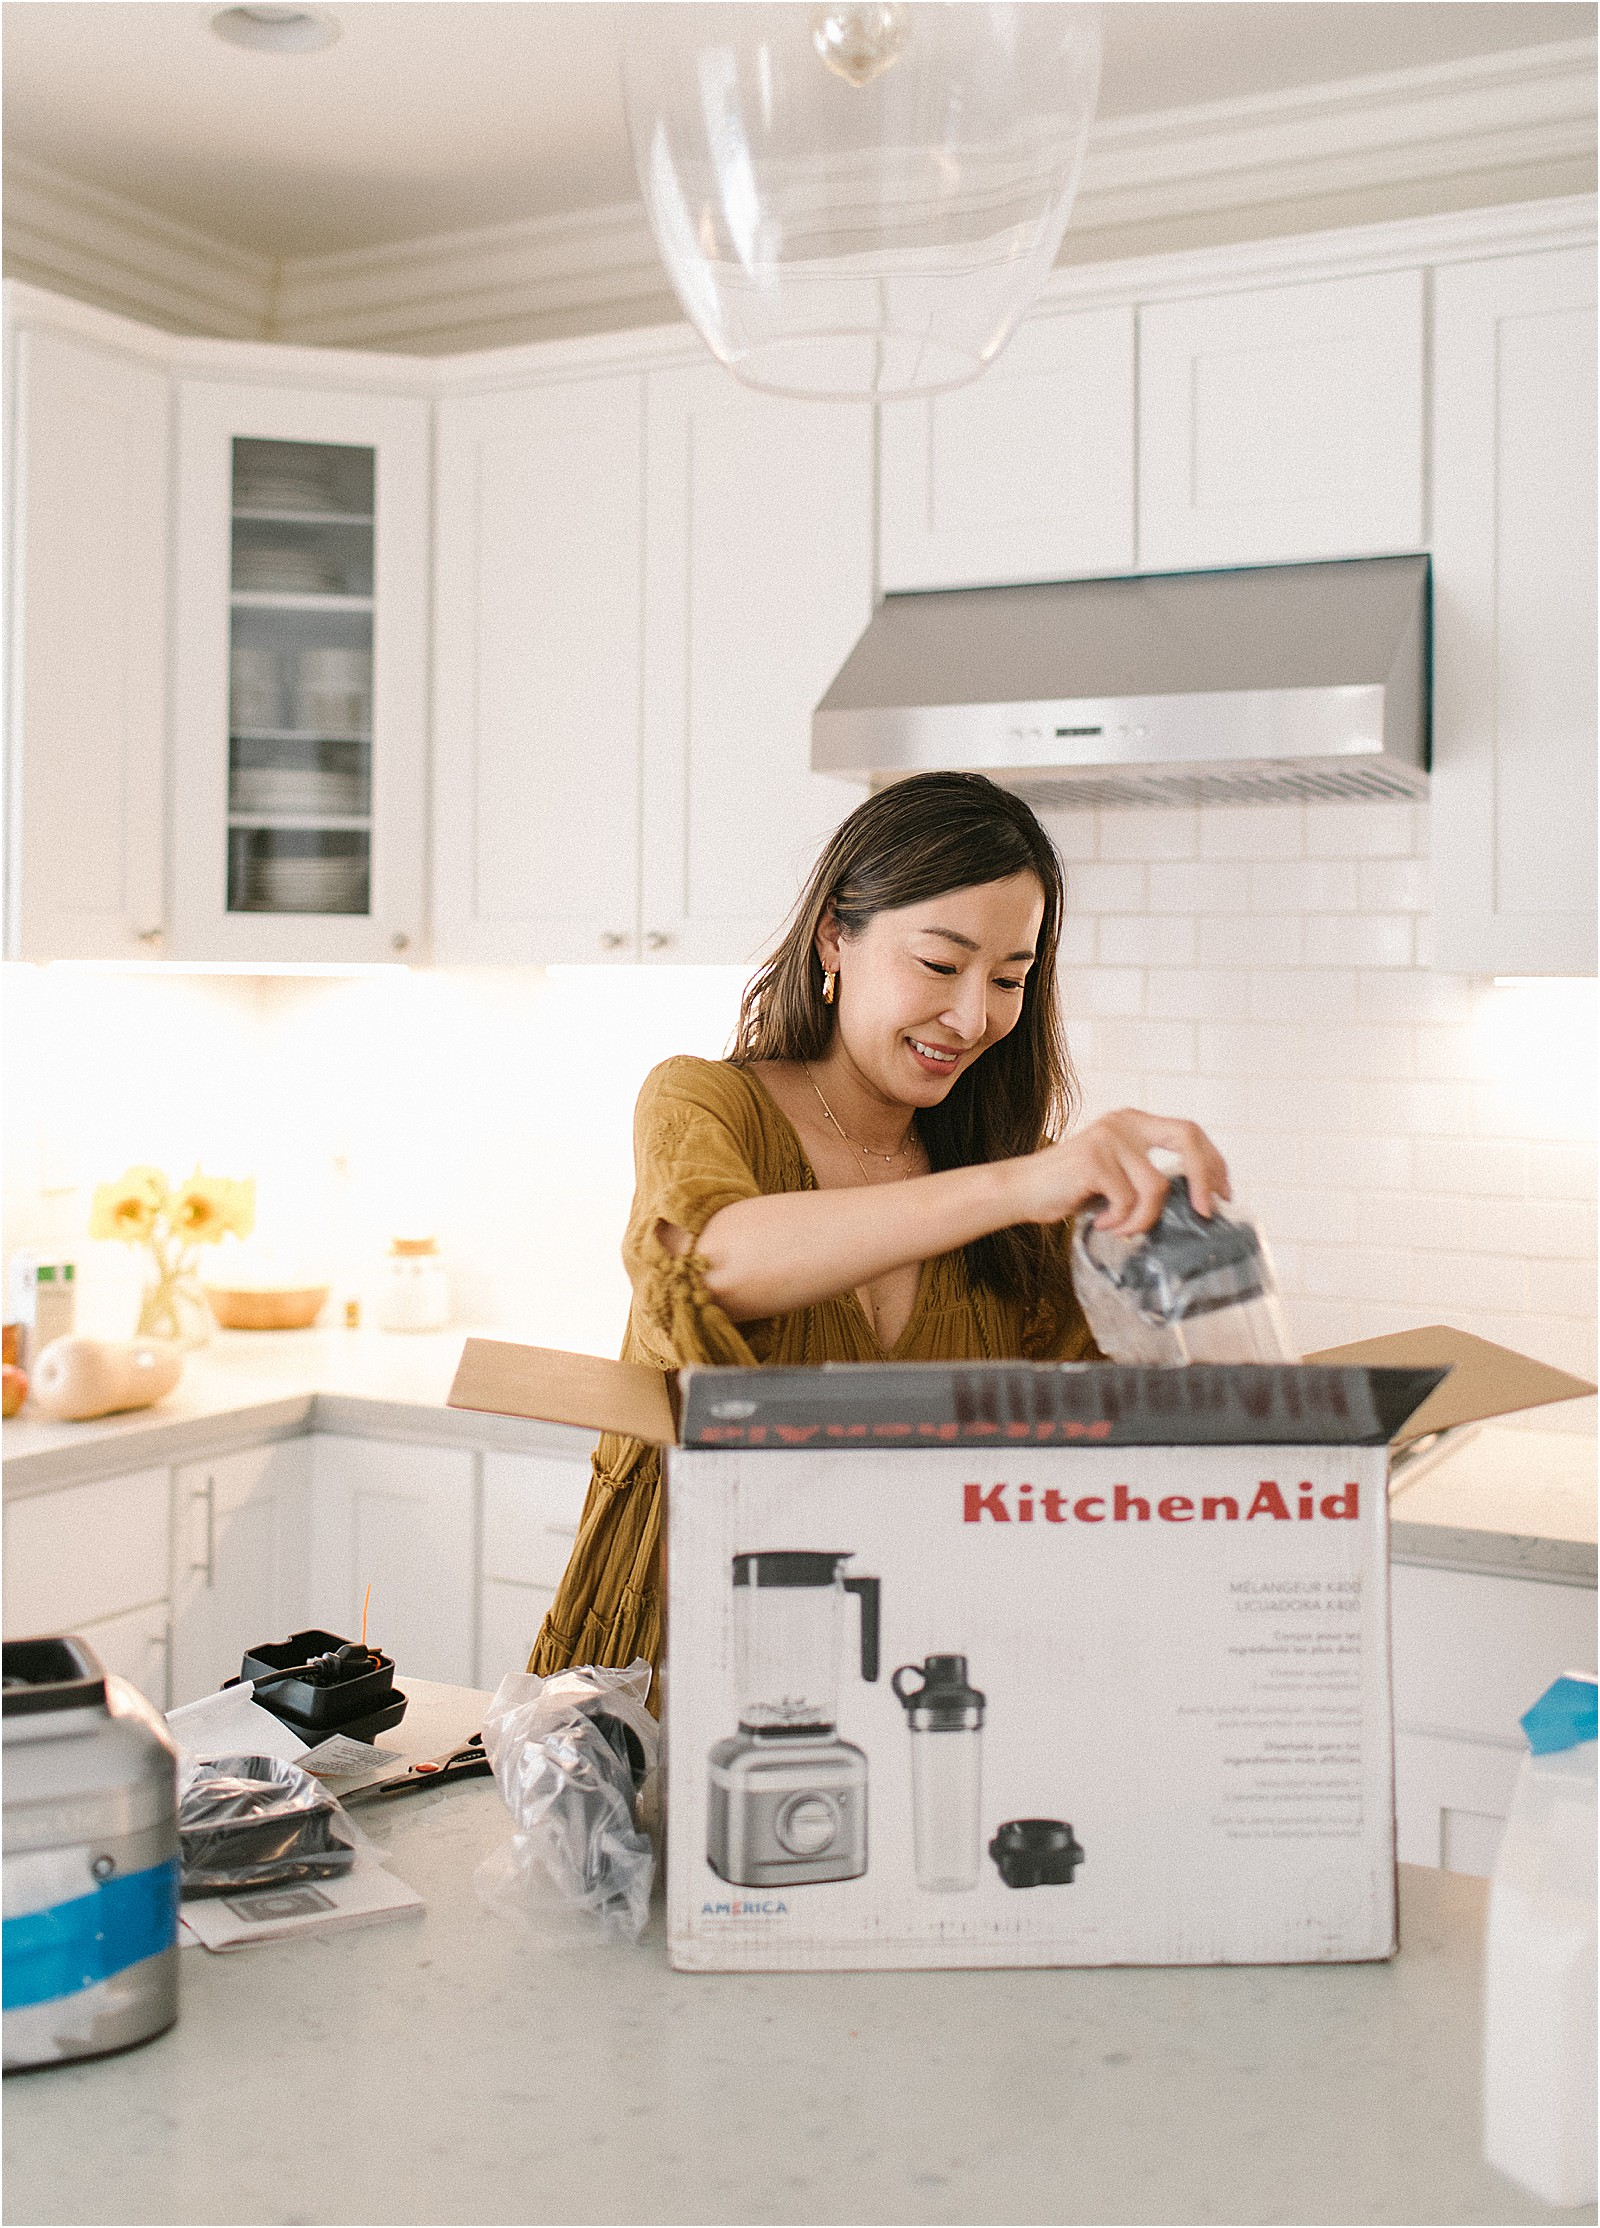 The KitchenAid K400 Blender